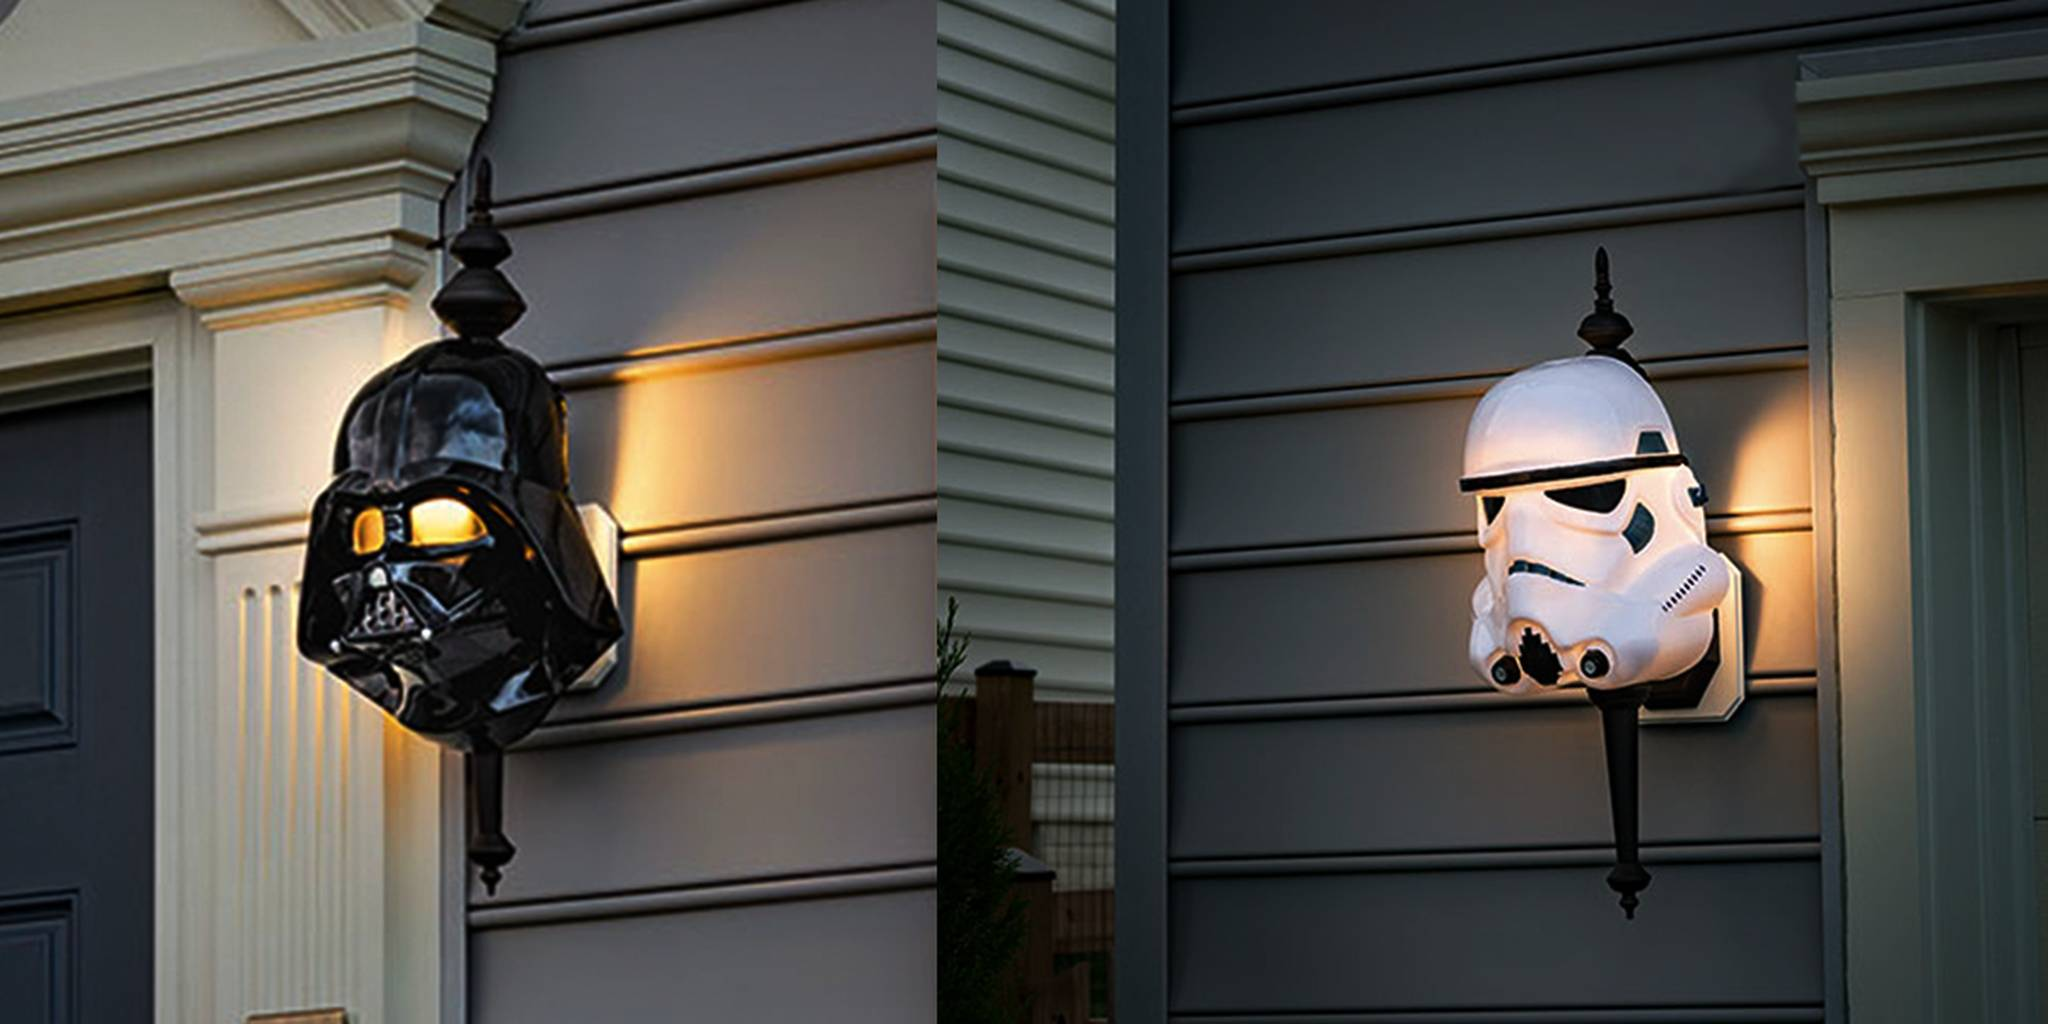 These 'Star Wars' porch light covers brighten your home